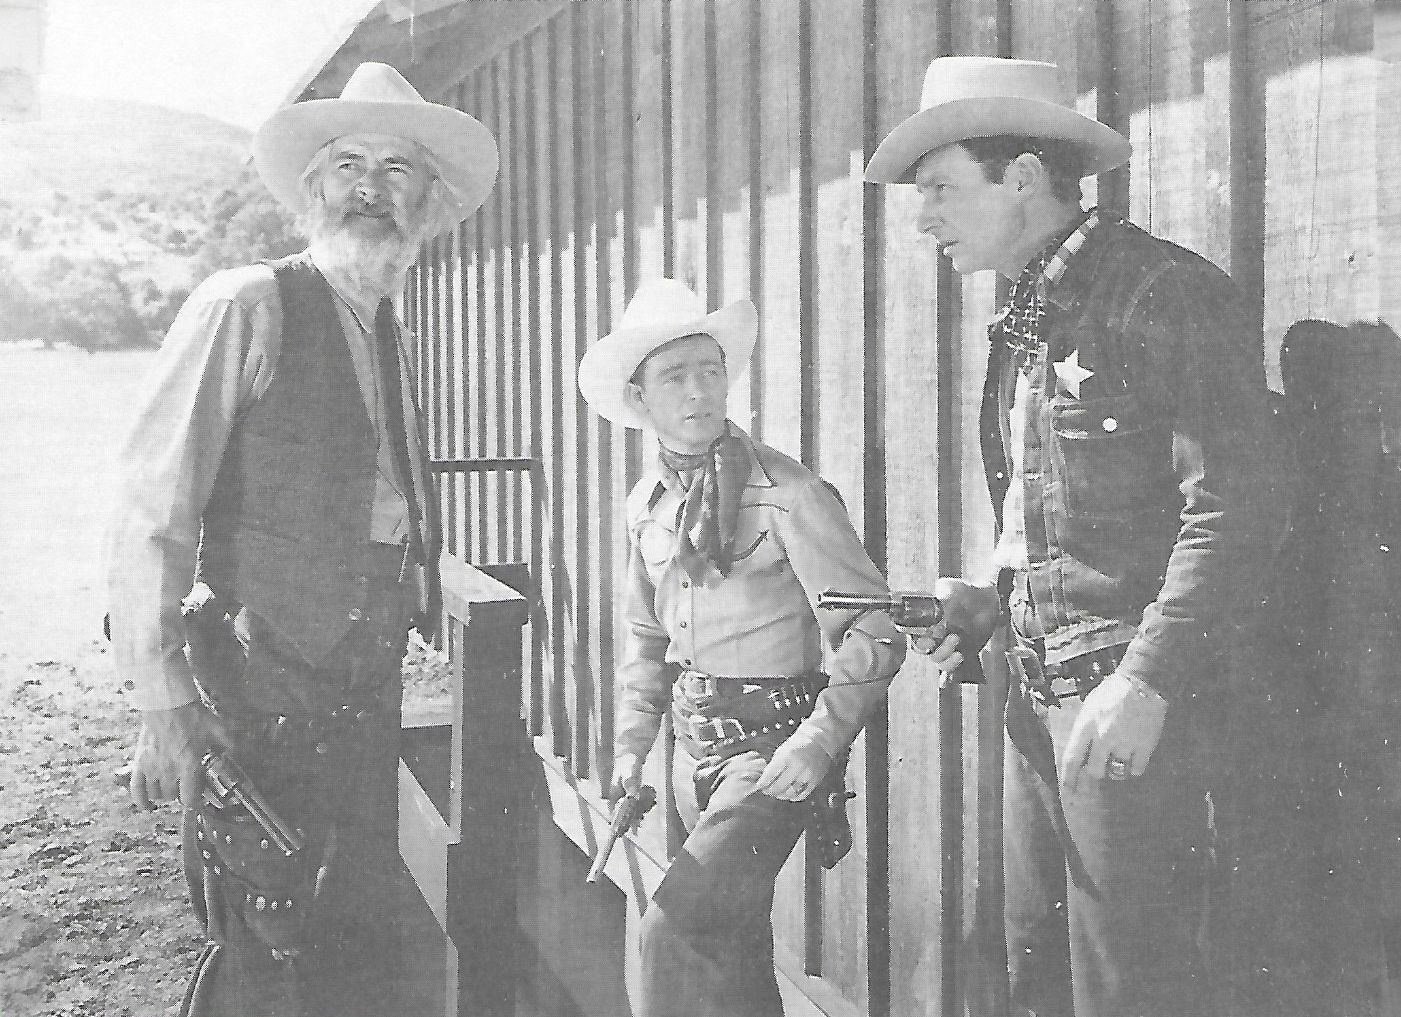 Roy Rogers, Pat Brady, and George 'Gabby' Hayes in Sons of the Pioneers (1942)